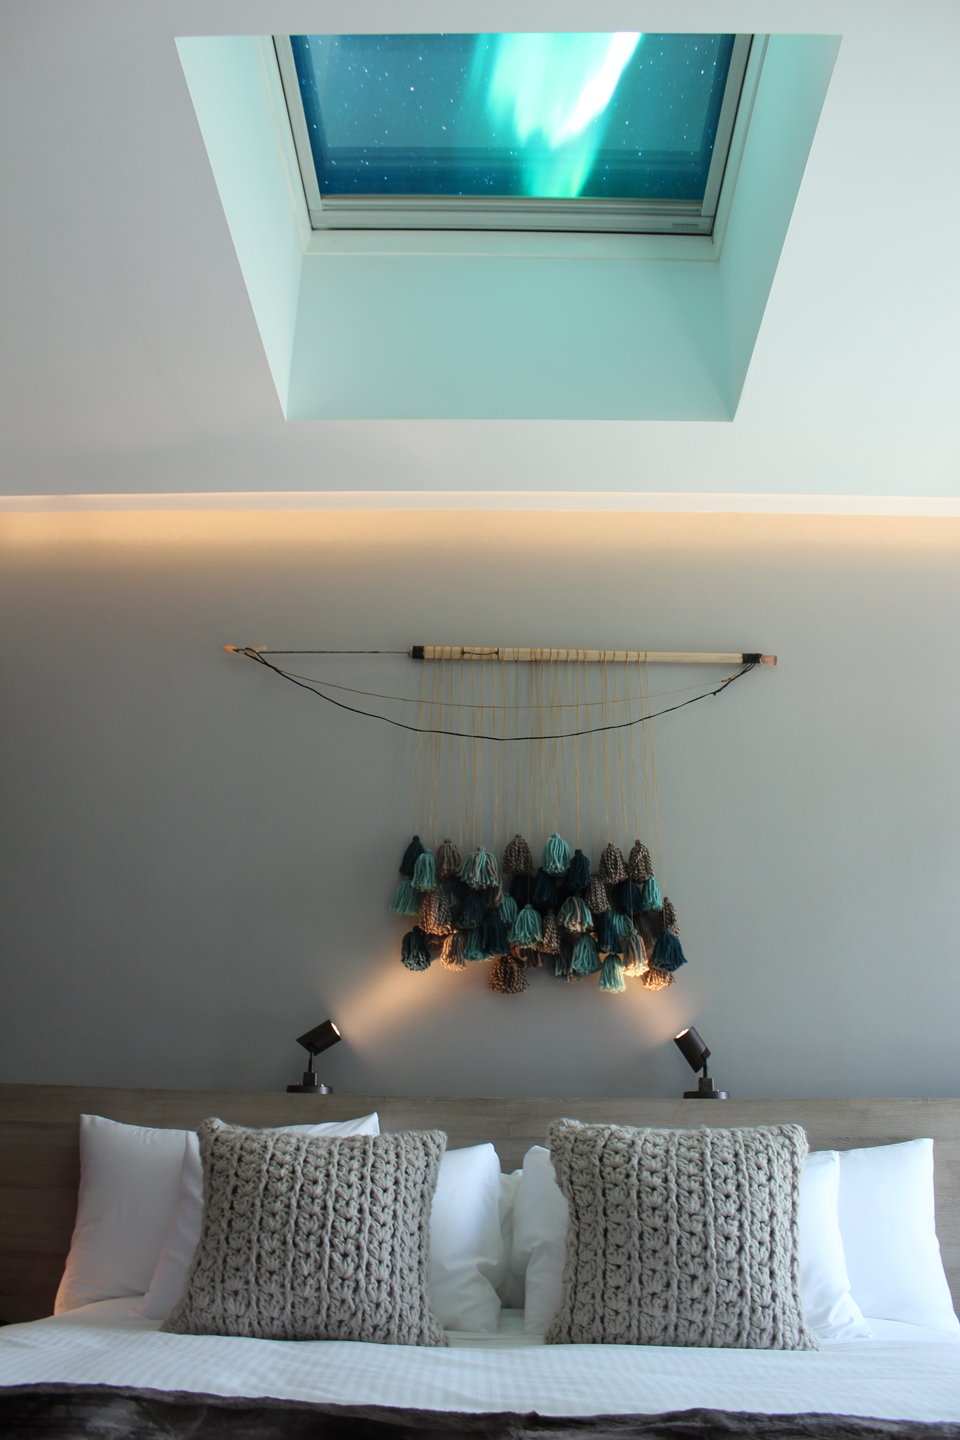 Nomodic-Northern-Lodge-Bedroom-Skylight.JPG